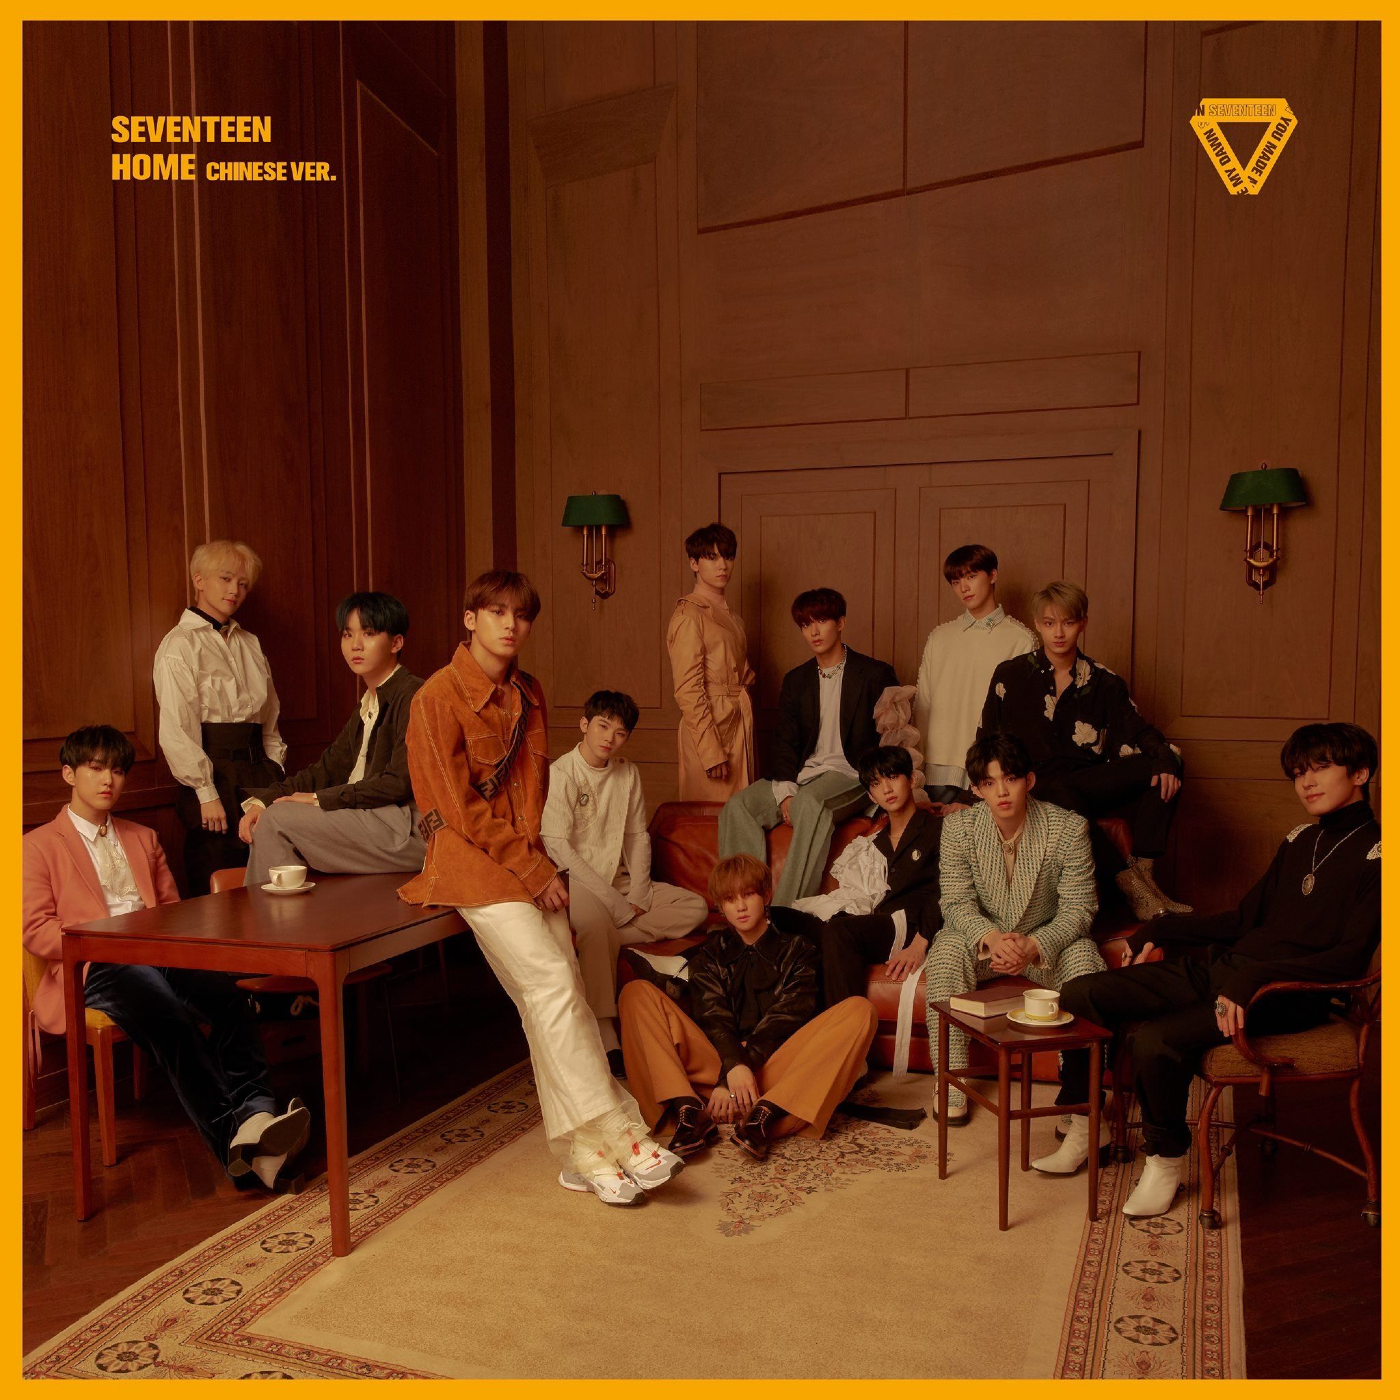 Home (SEVENTEEN Chinese single)